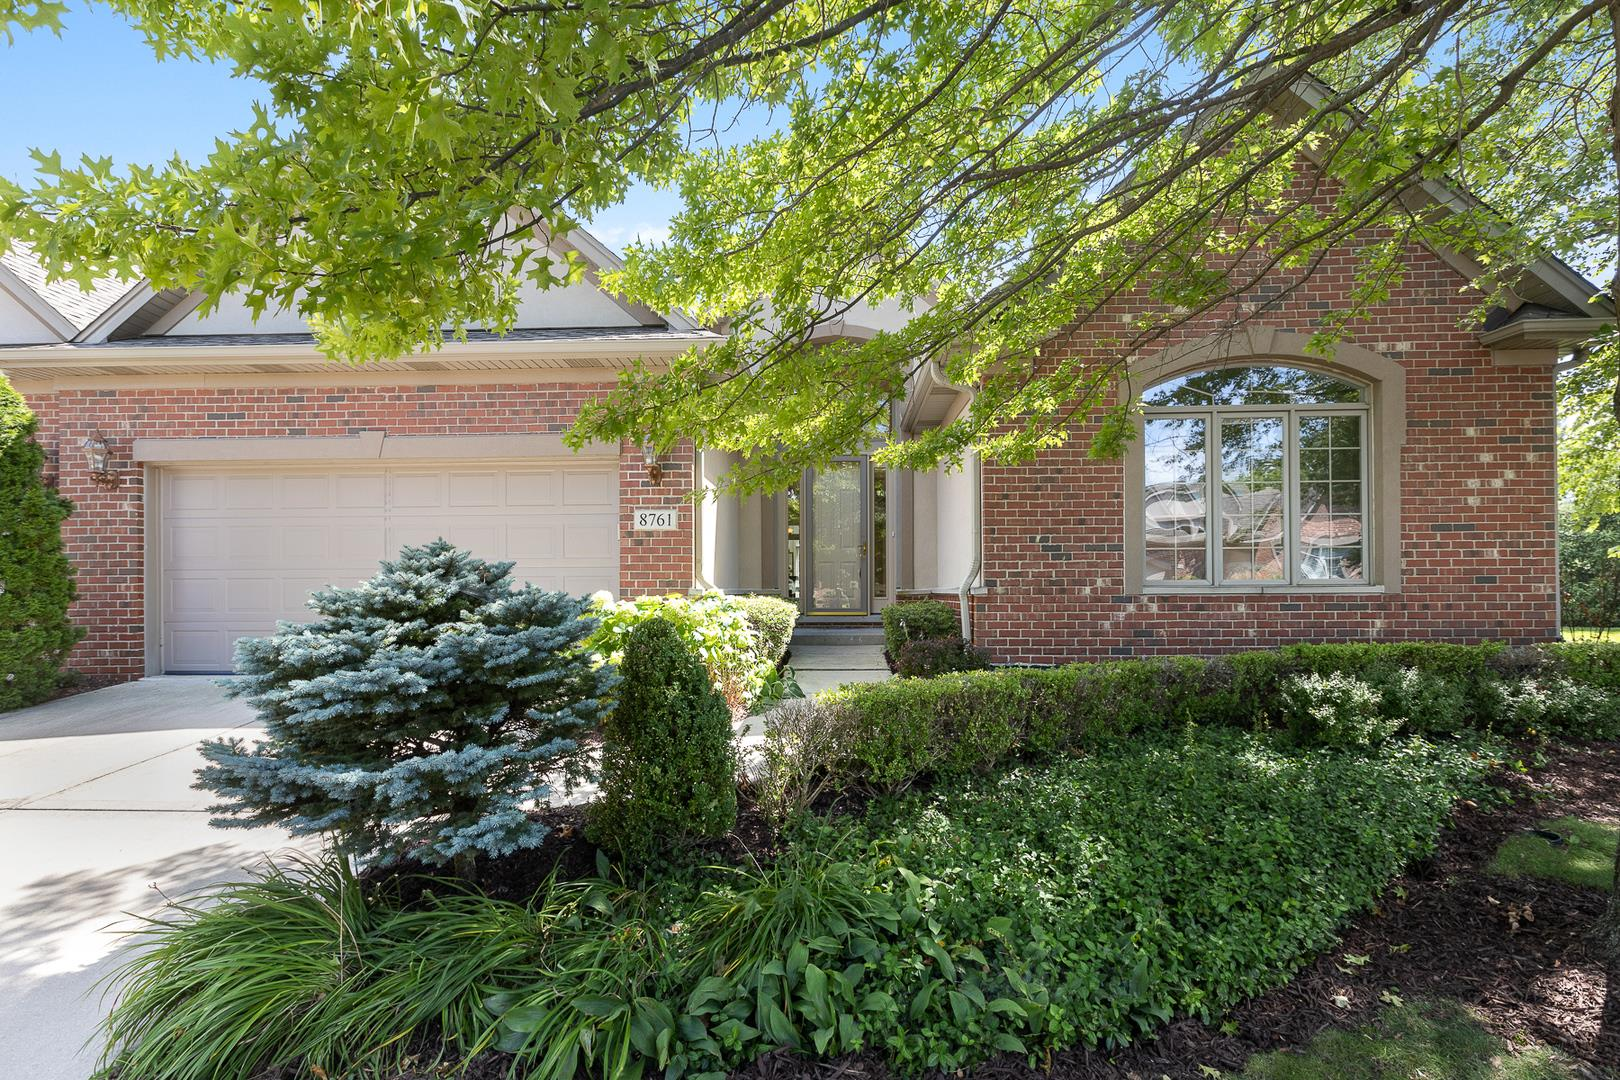 8761 BERKLEY Court, Orland Park, IL 60462 - #: 10801498